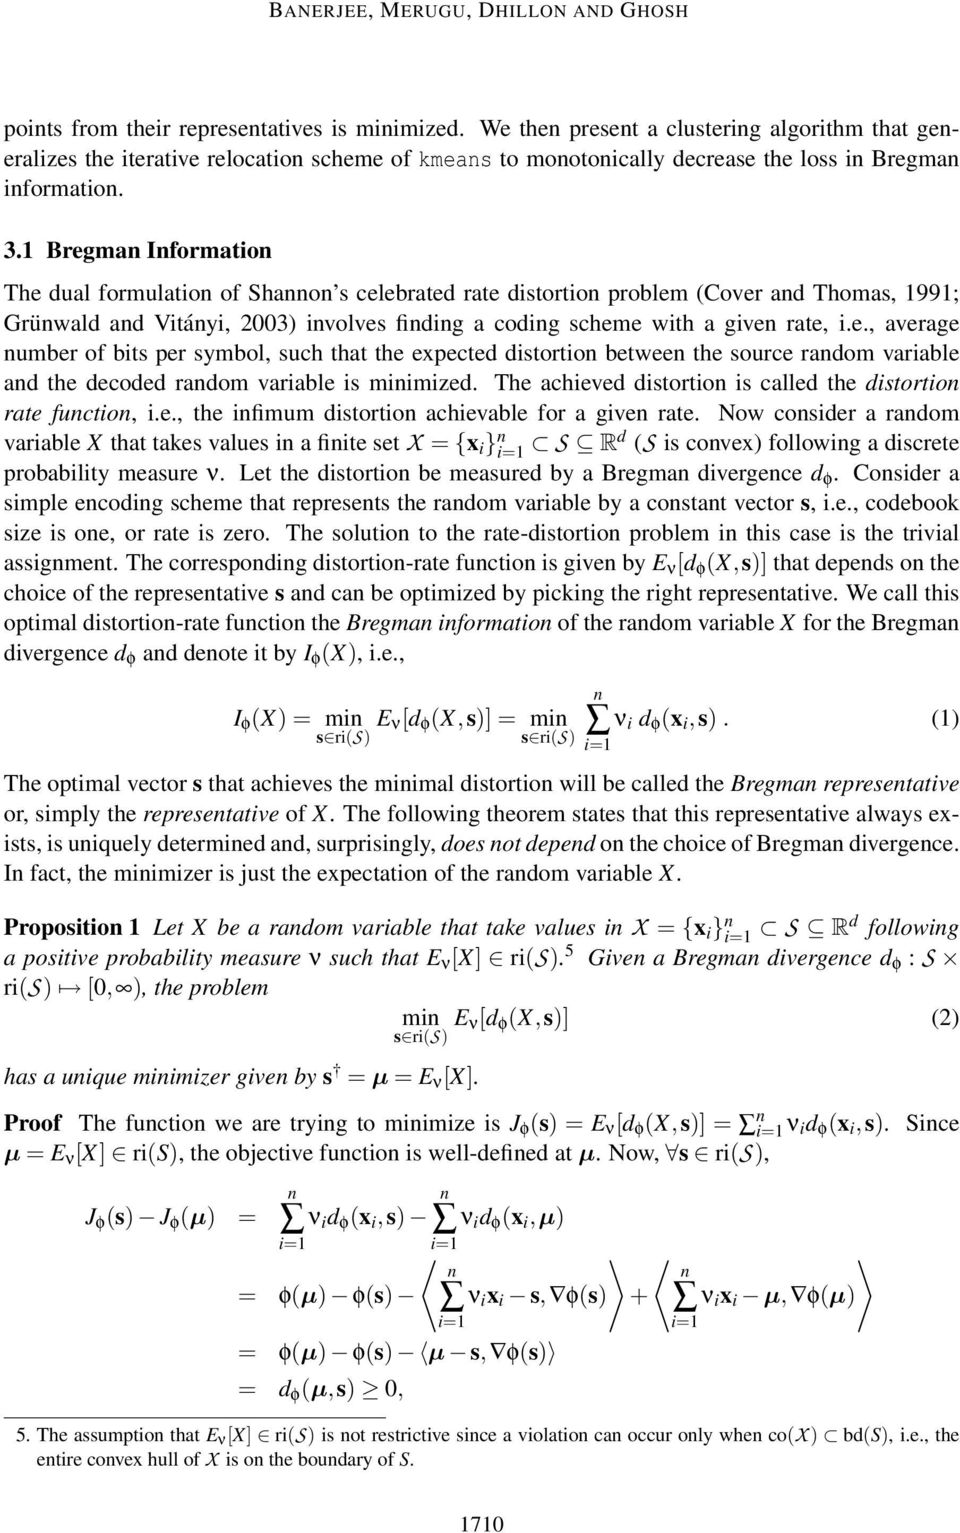 1 Bregman Information The dual formulation of Shannon s celebrated rate distortion problem (Cover and Thomas, 1991; Grünwald and Vitányi, 2003) involves finding a coding scheme with a given rate, i.e., average number of bits per symbol, such that the expected distortion between the source random variable and the decoded random variable is minimized.